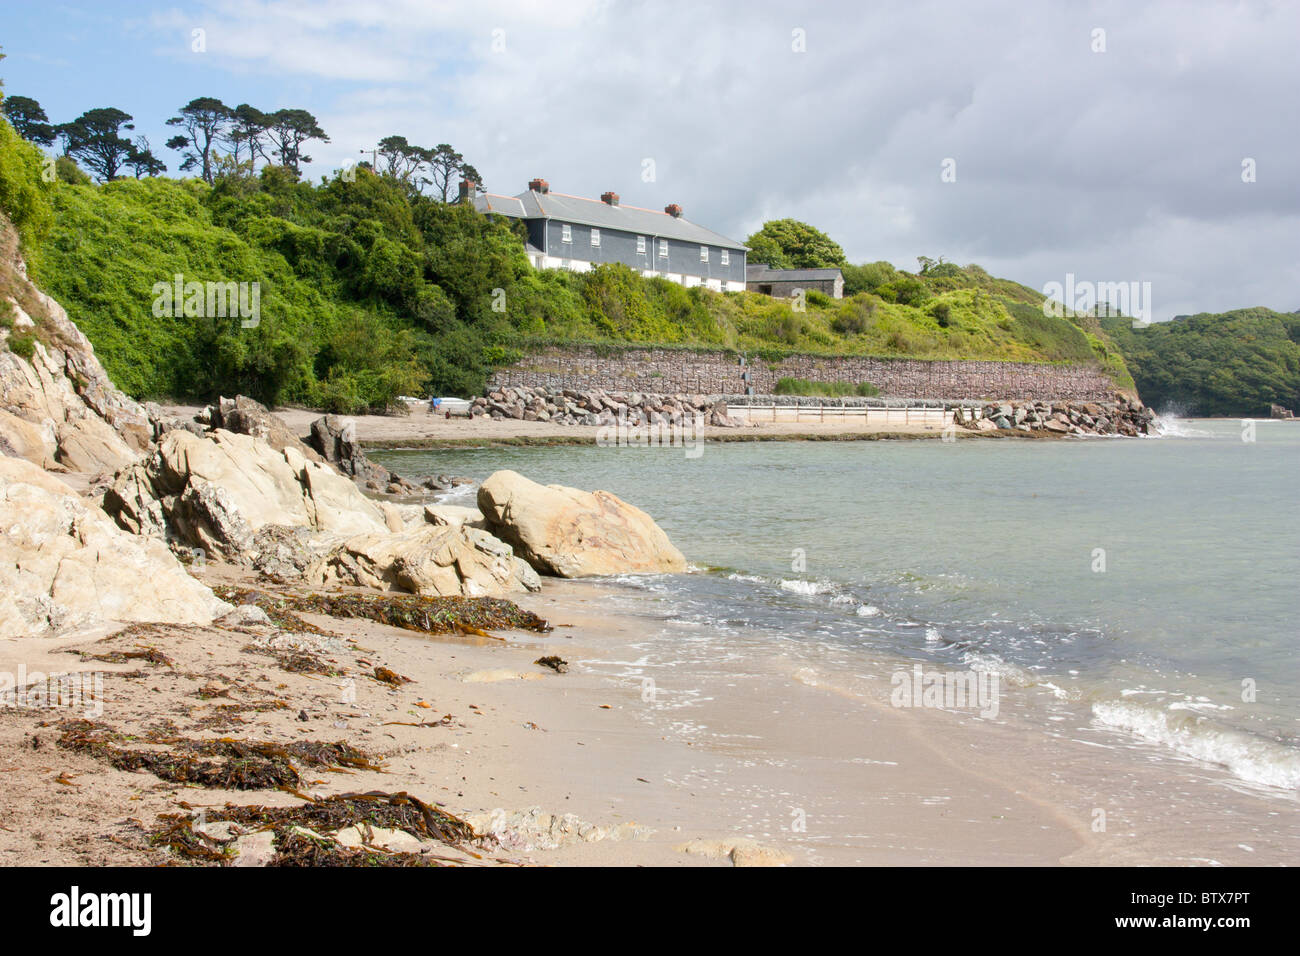 River Erme at Mothecombe Slipway Devon England - Stock Image